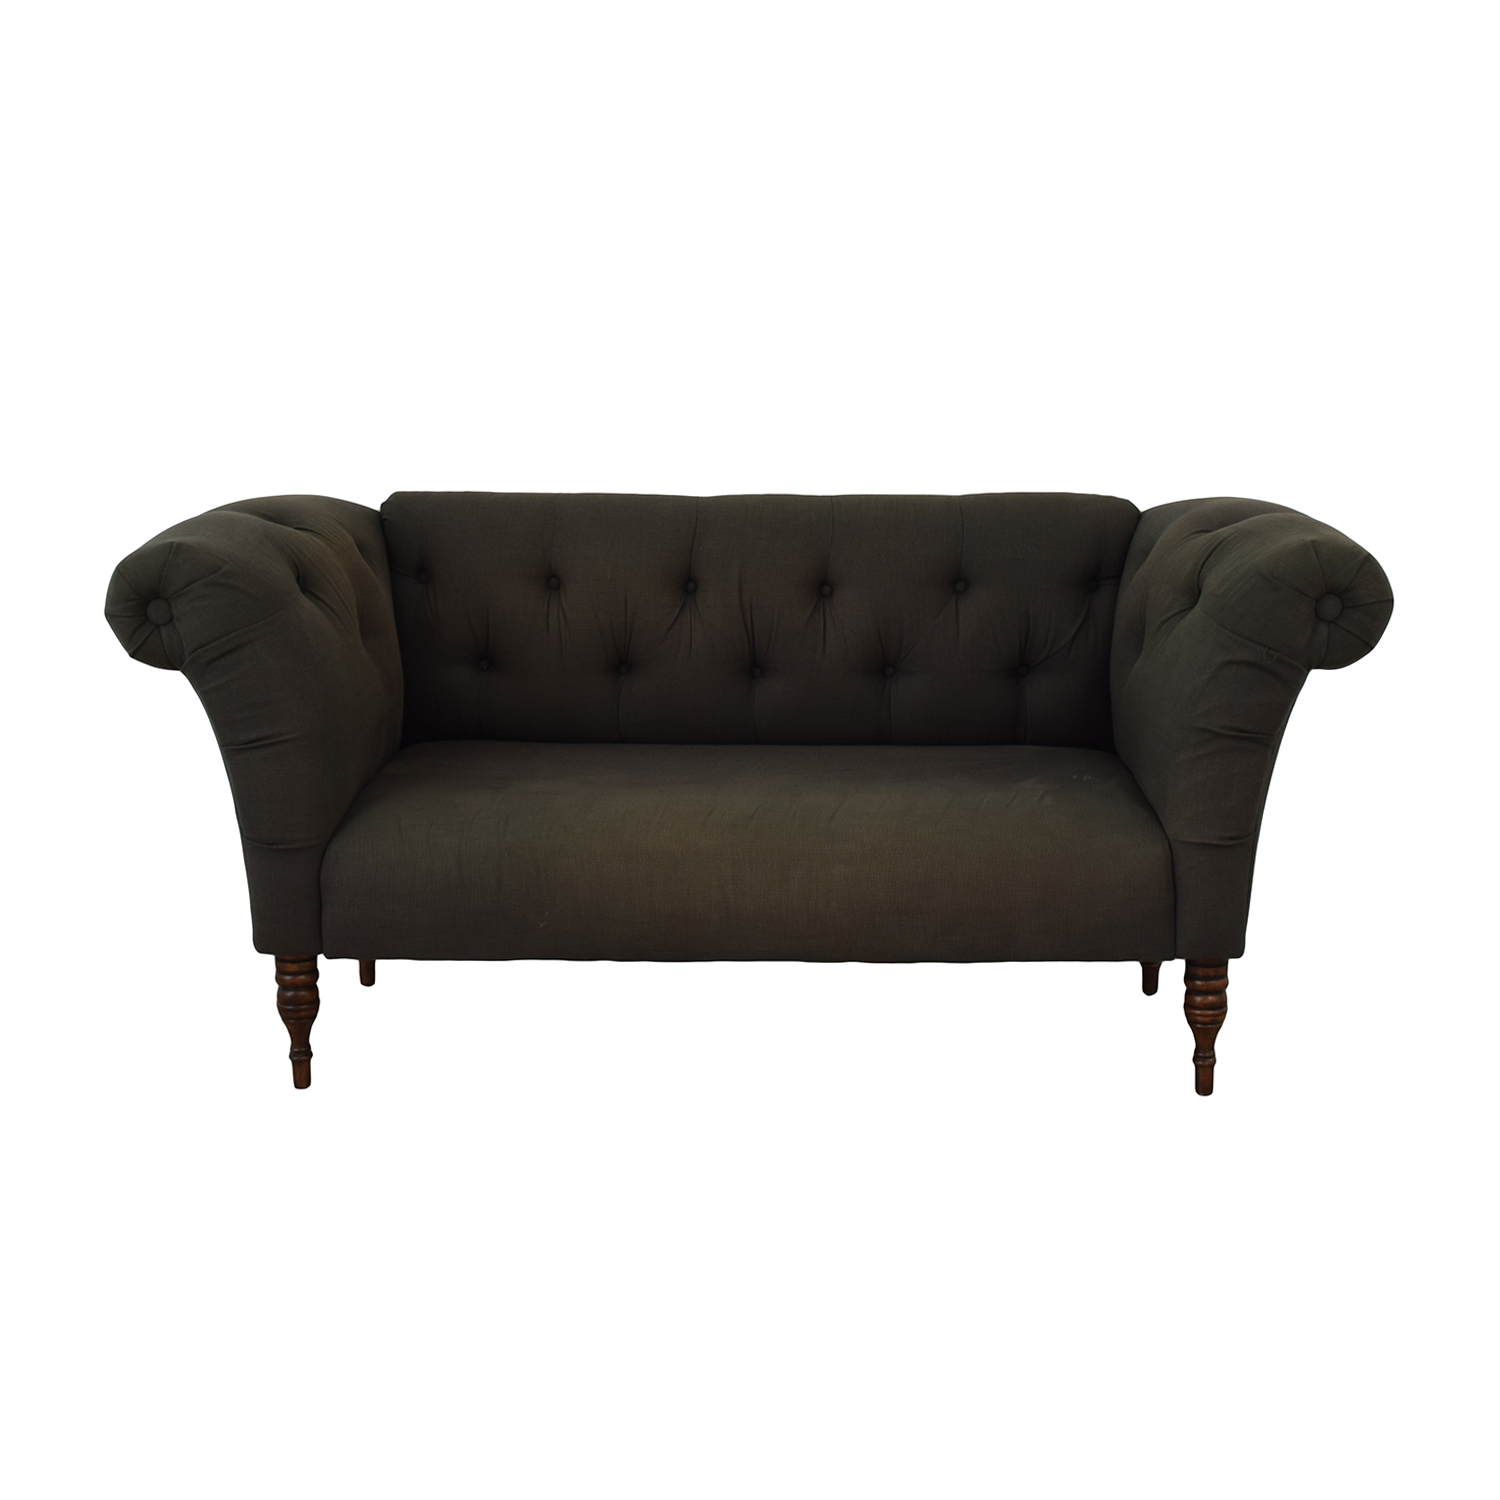 Urban Outfitters Urban Outfitters Grey Tufted Sofa Classic Sofas